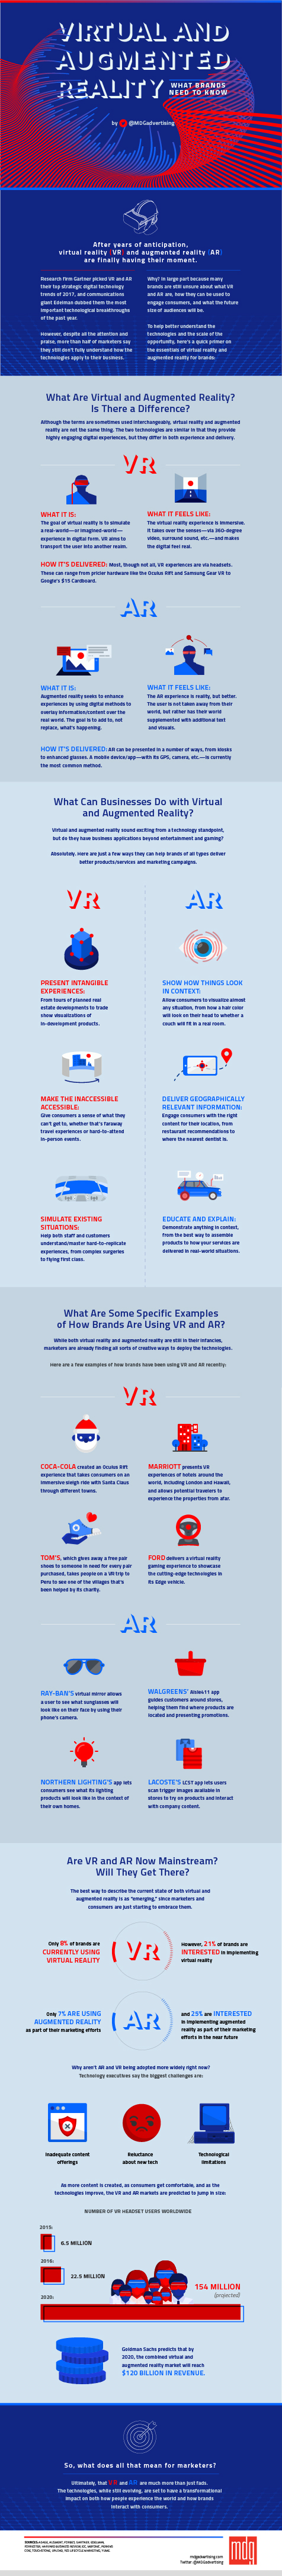 Virtual and Augmented Reality: What Brands Need to Know [Infographic]